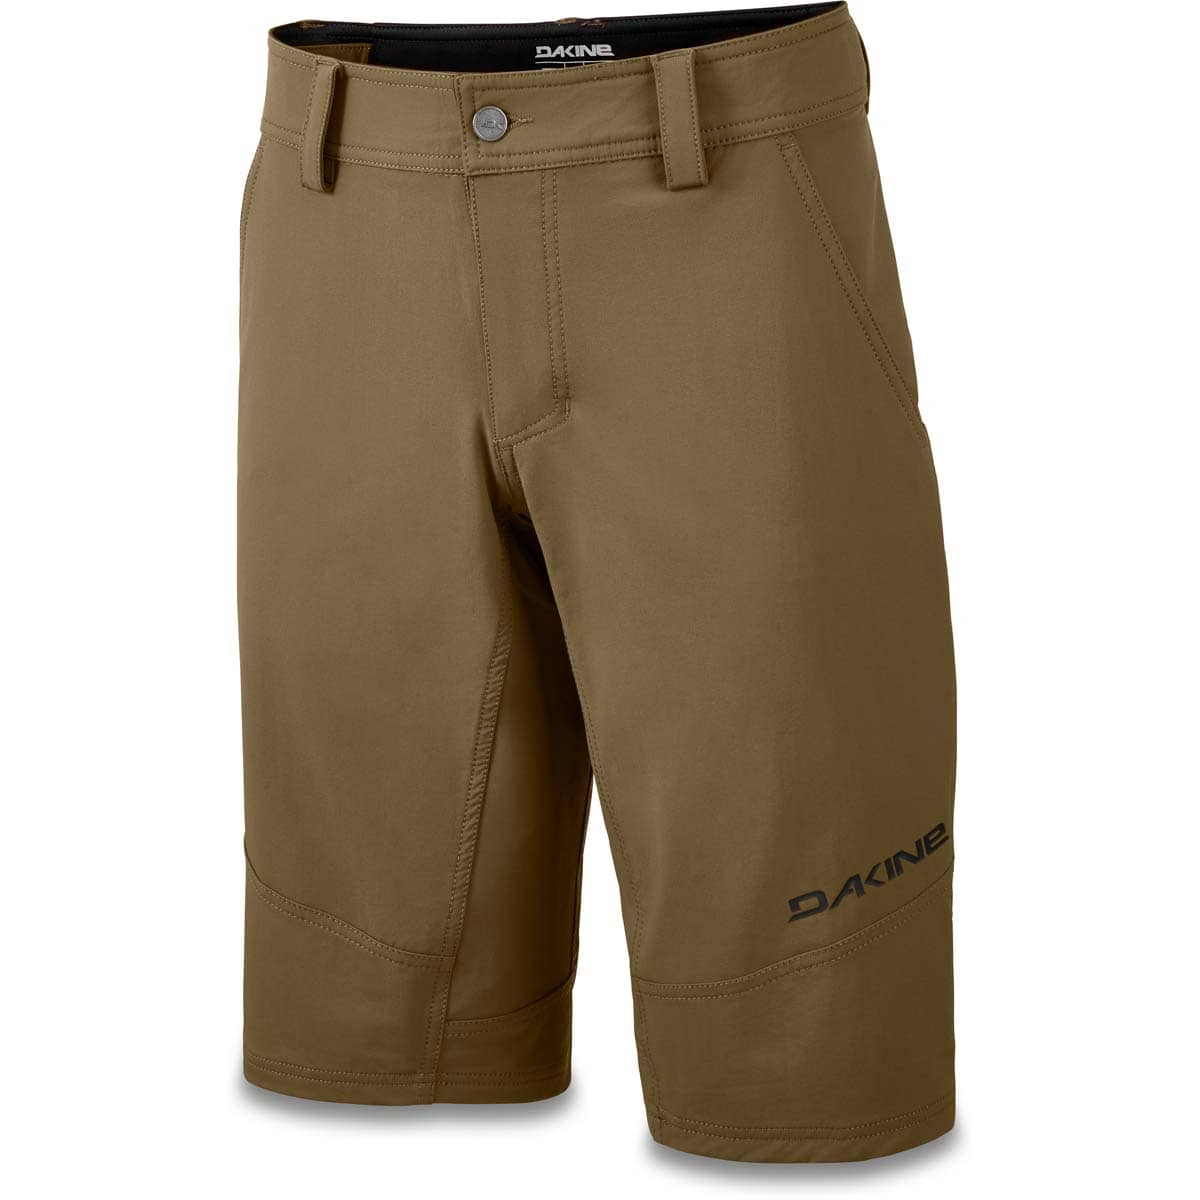 Dakine Dropout Short Bike Short Dark Olive